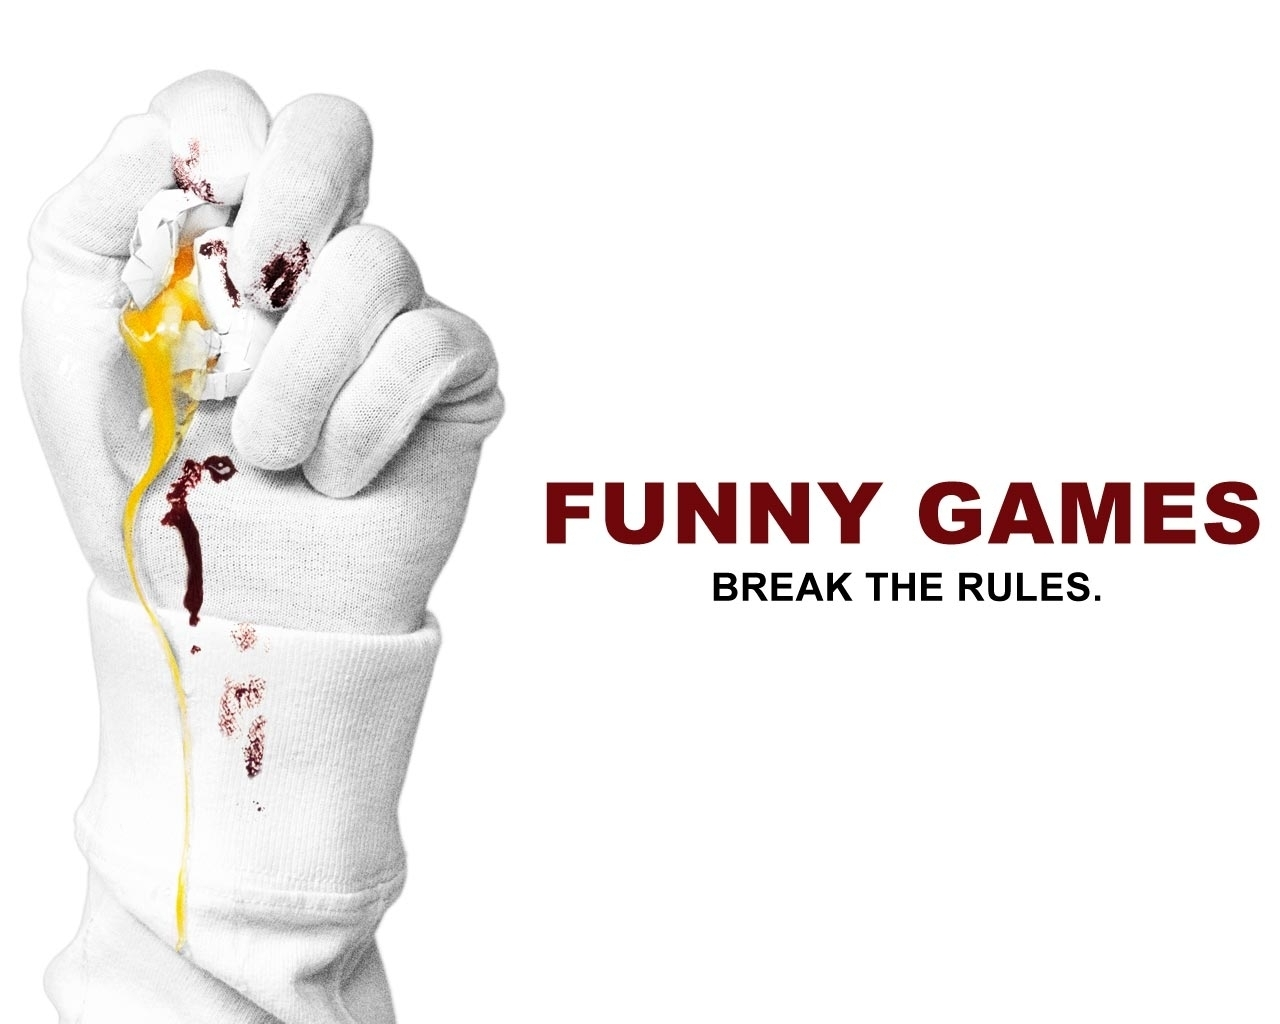 Funny Games images Funny Games US Wallpaper HD wallpaper and ...